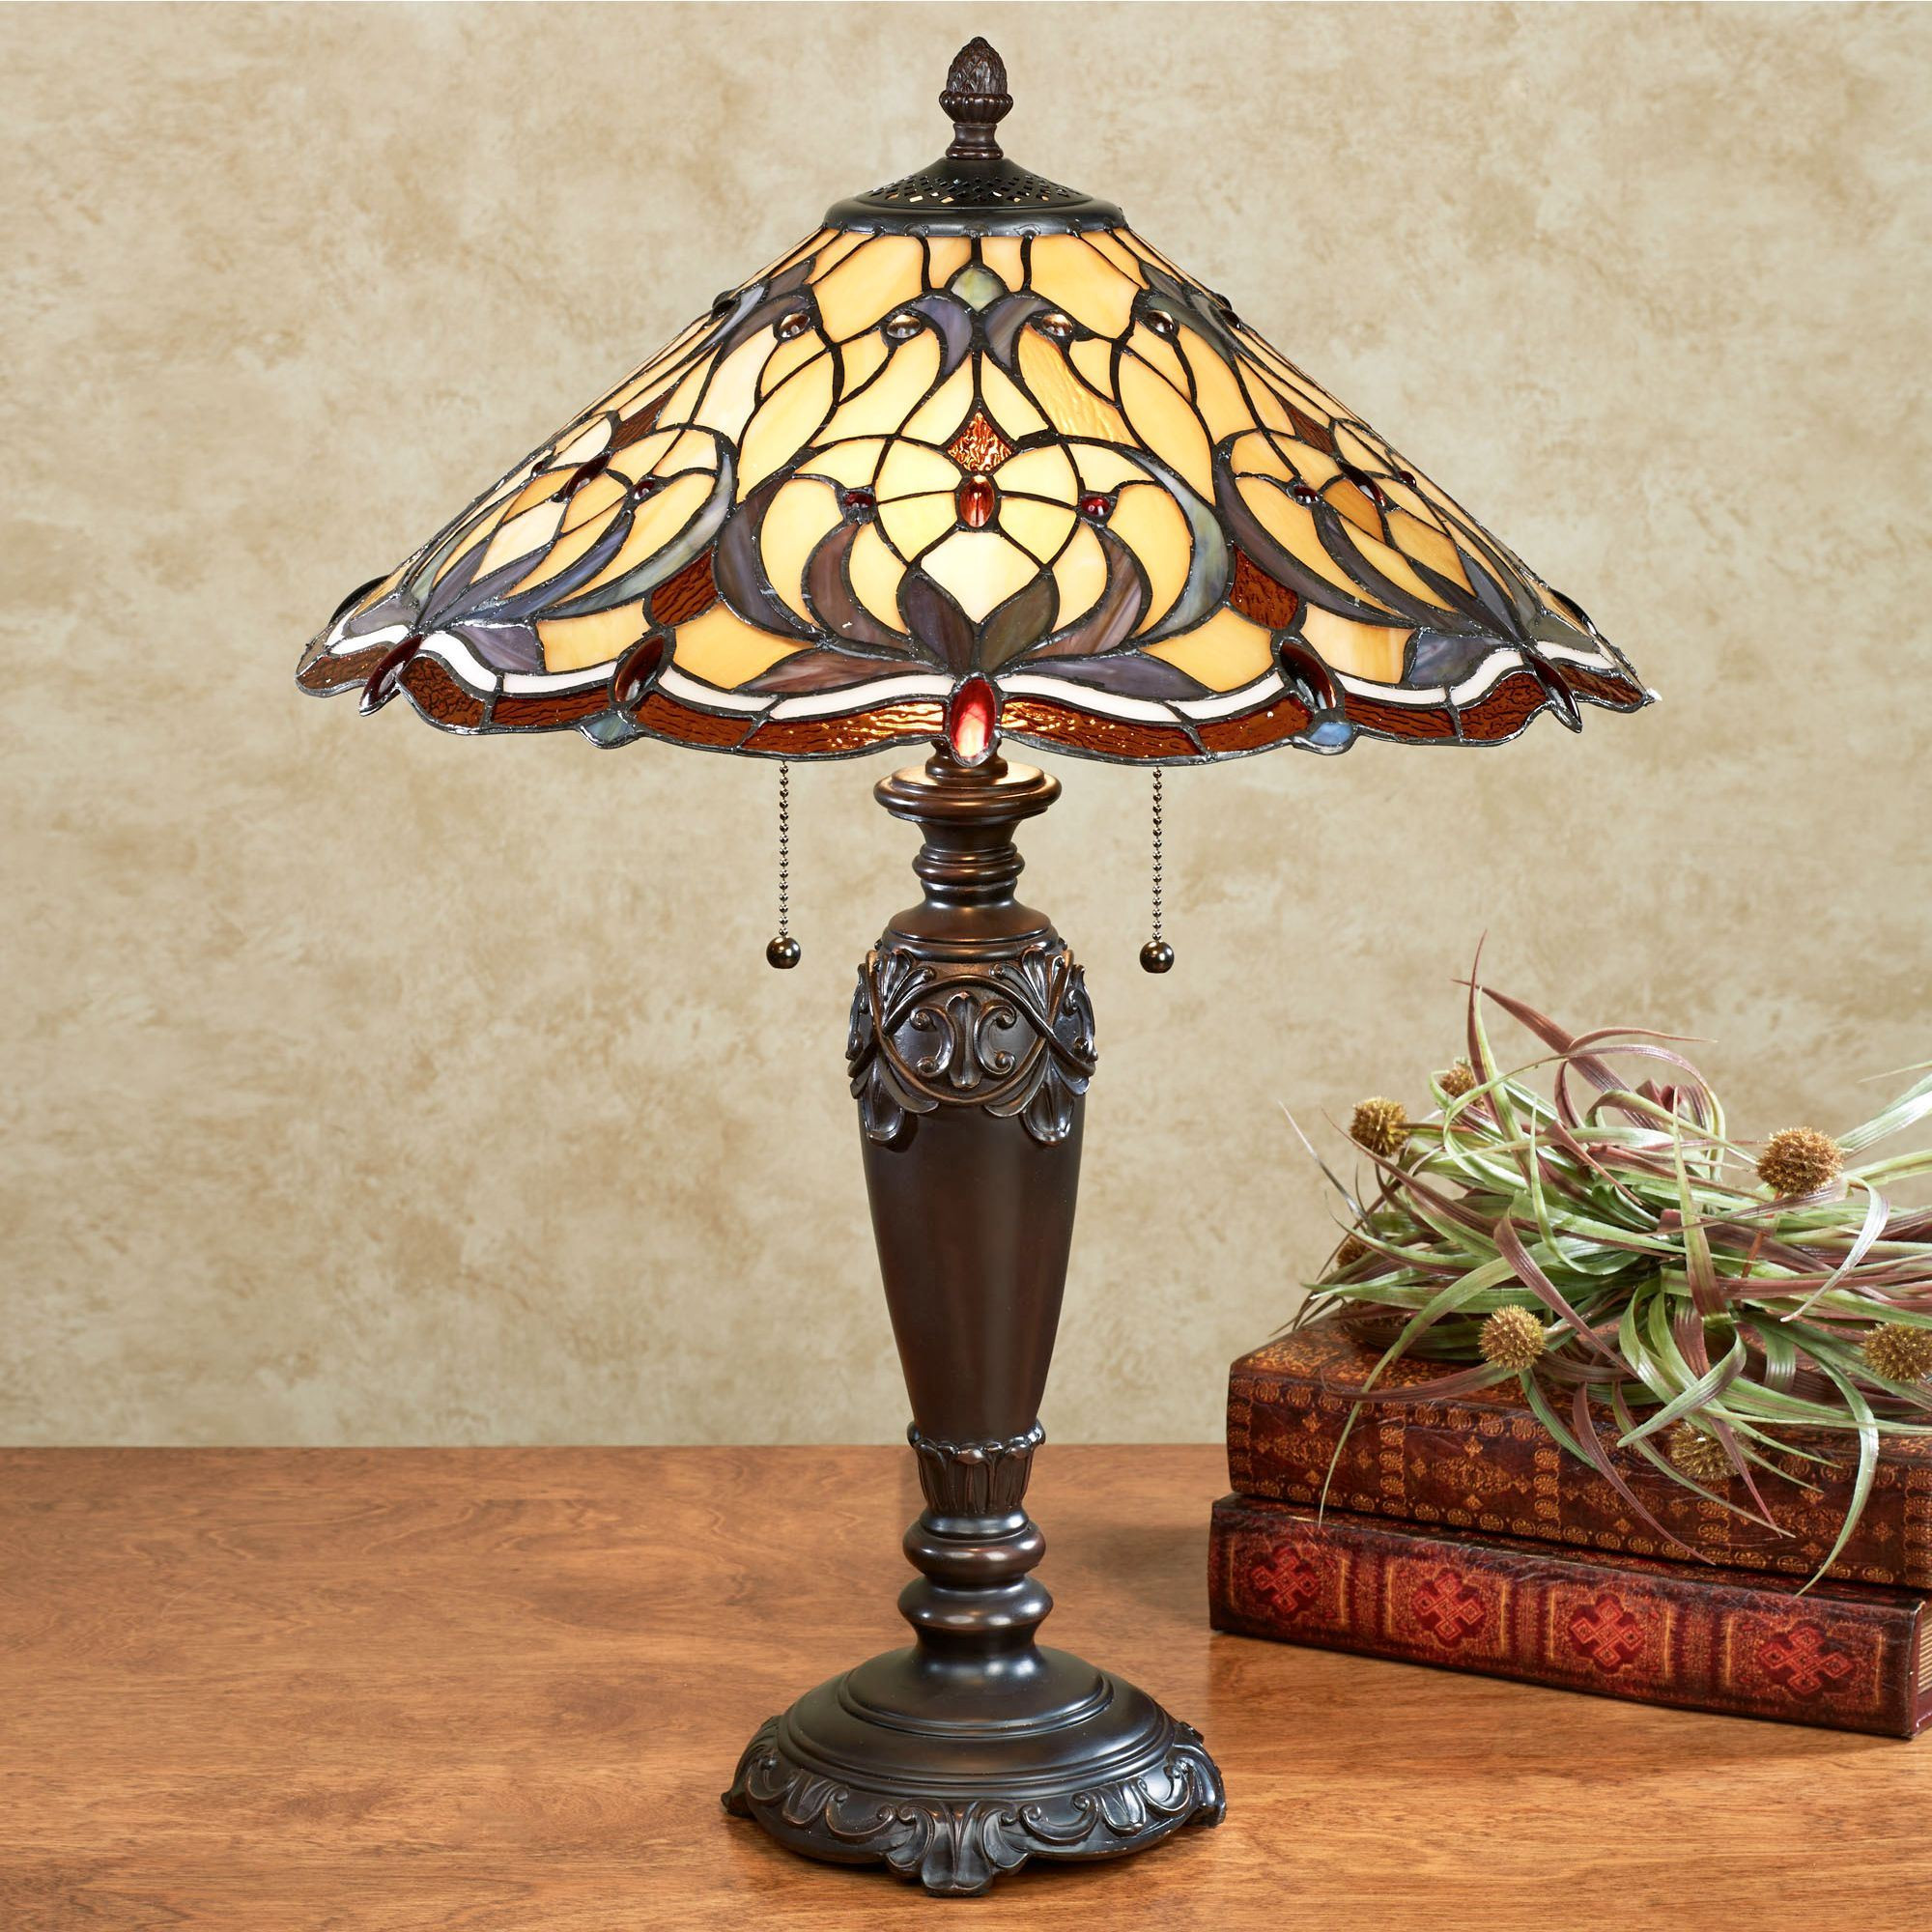 Best ideas about Stained Glass Desk Lamp . Save or Pin Michaela Stained Glass Table Lamp with CFL Bulbs Now.